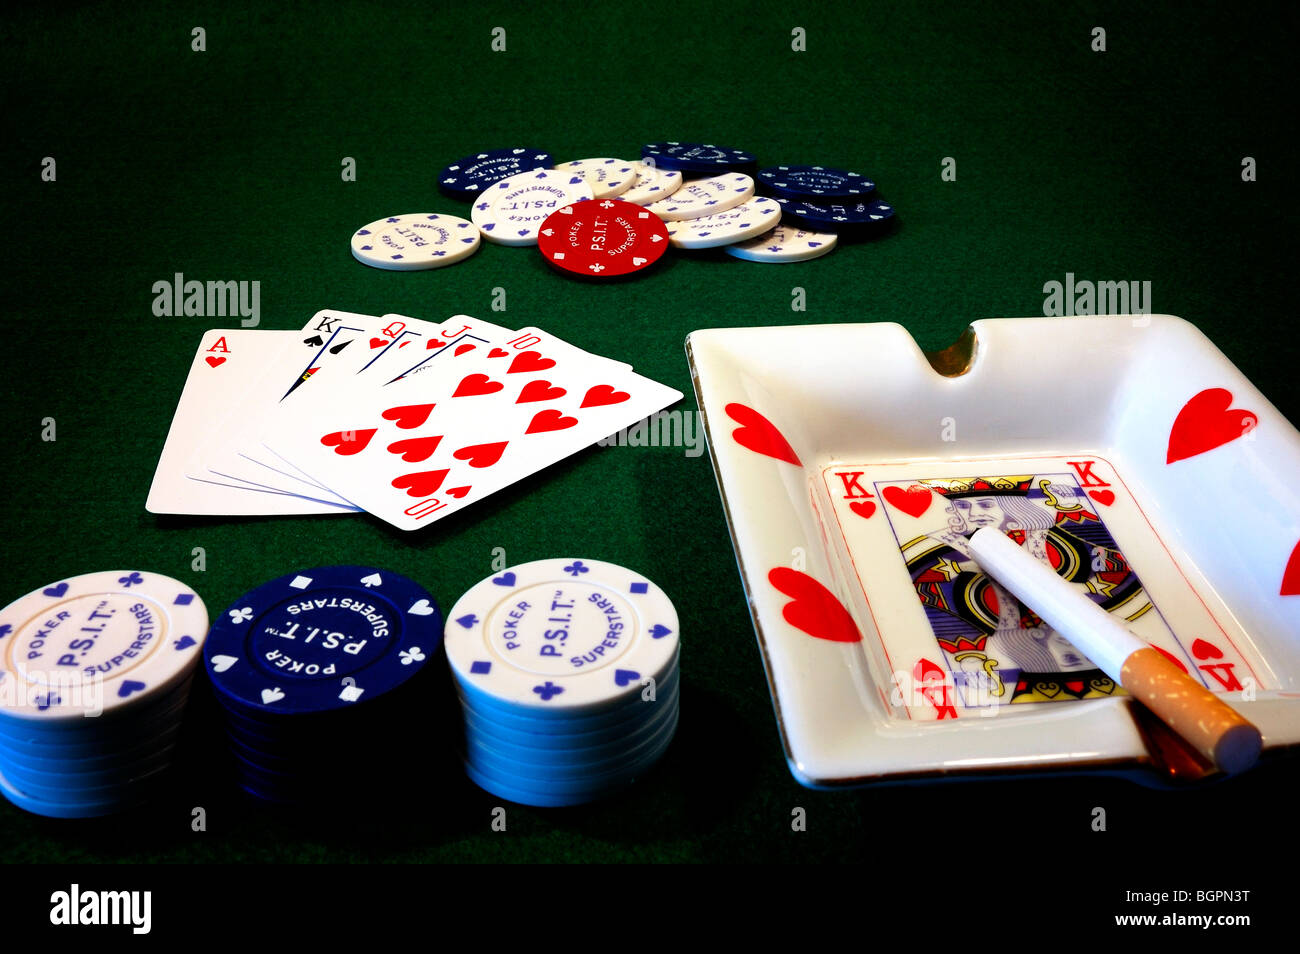 poker table showing cards and poker chips - Stock Image